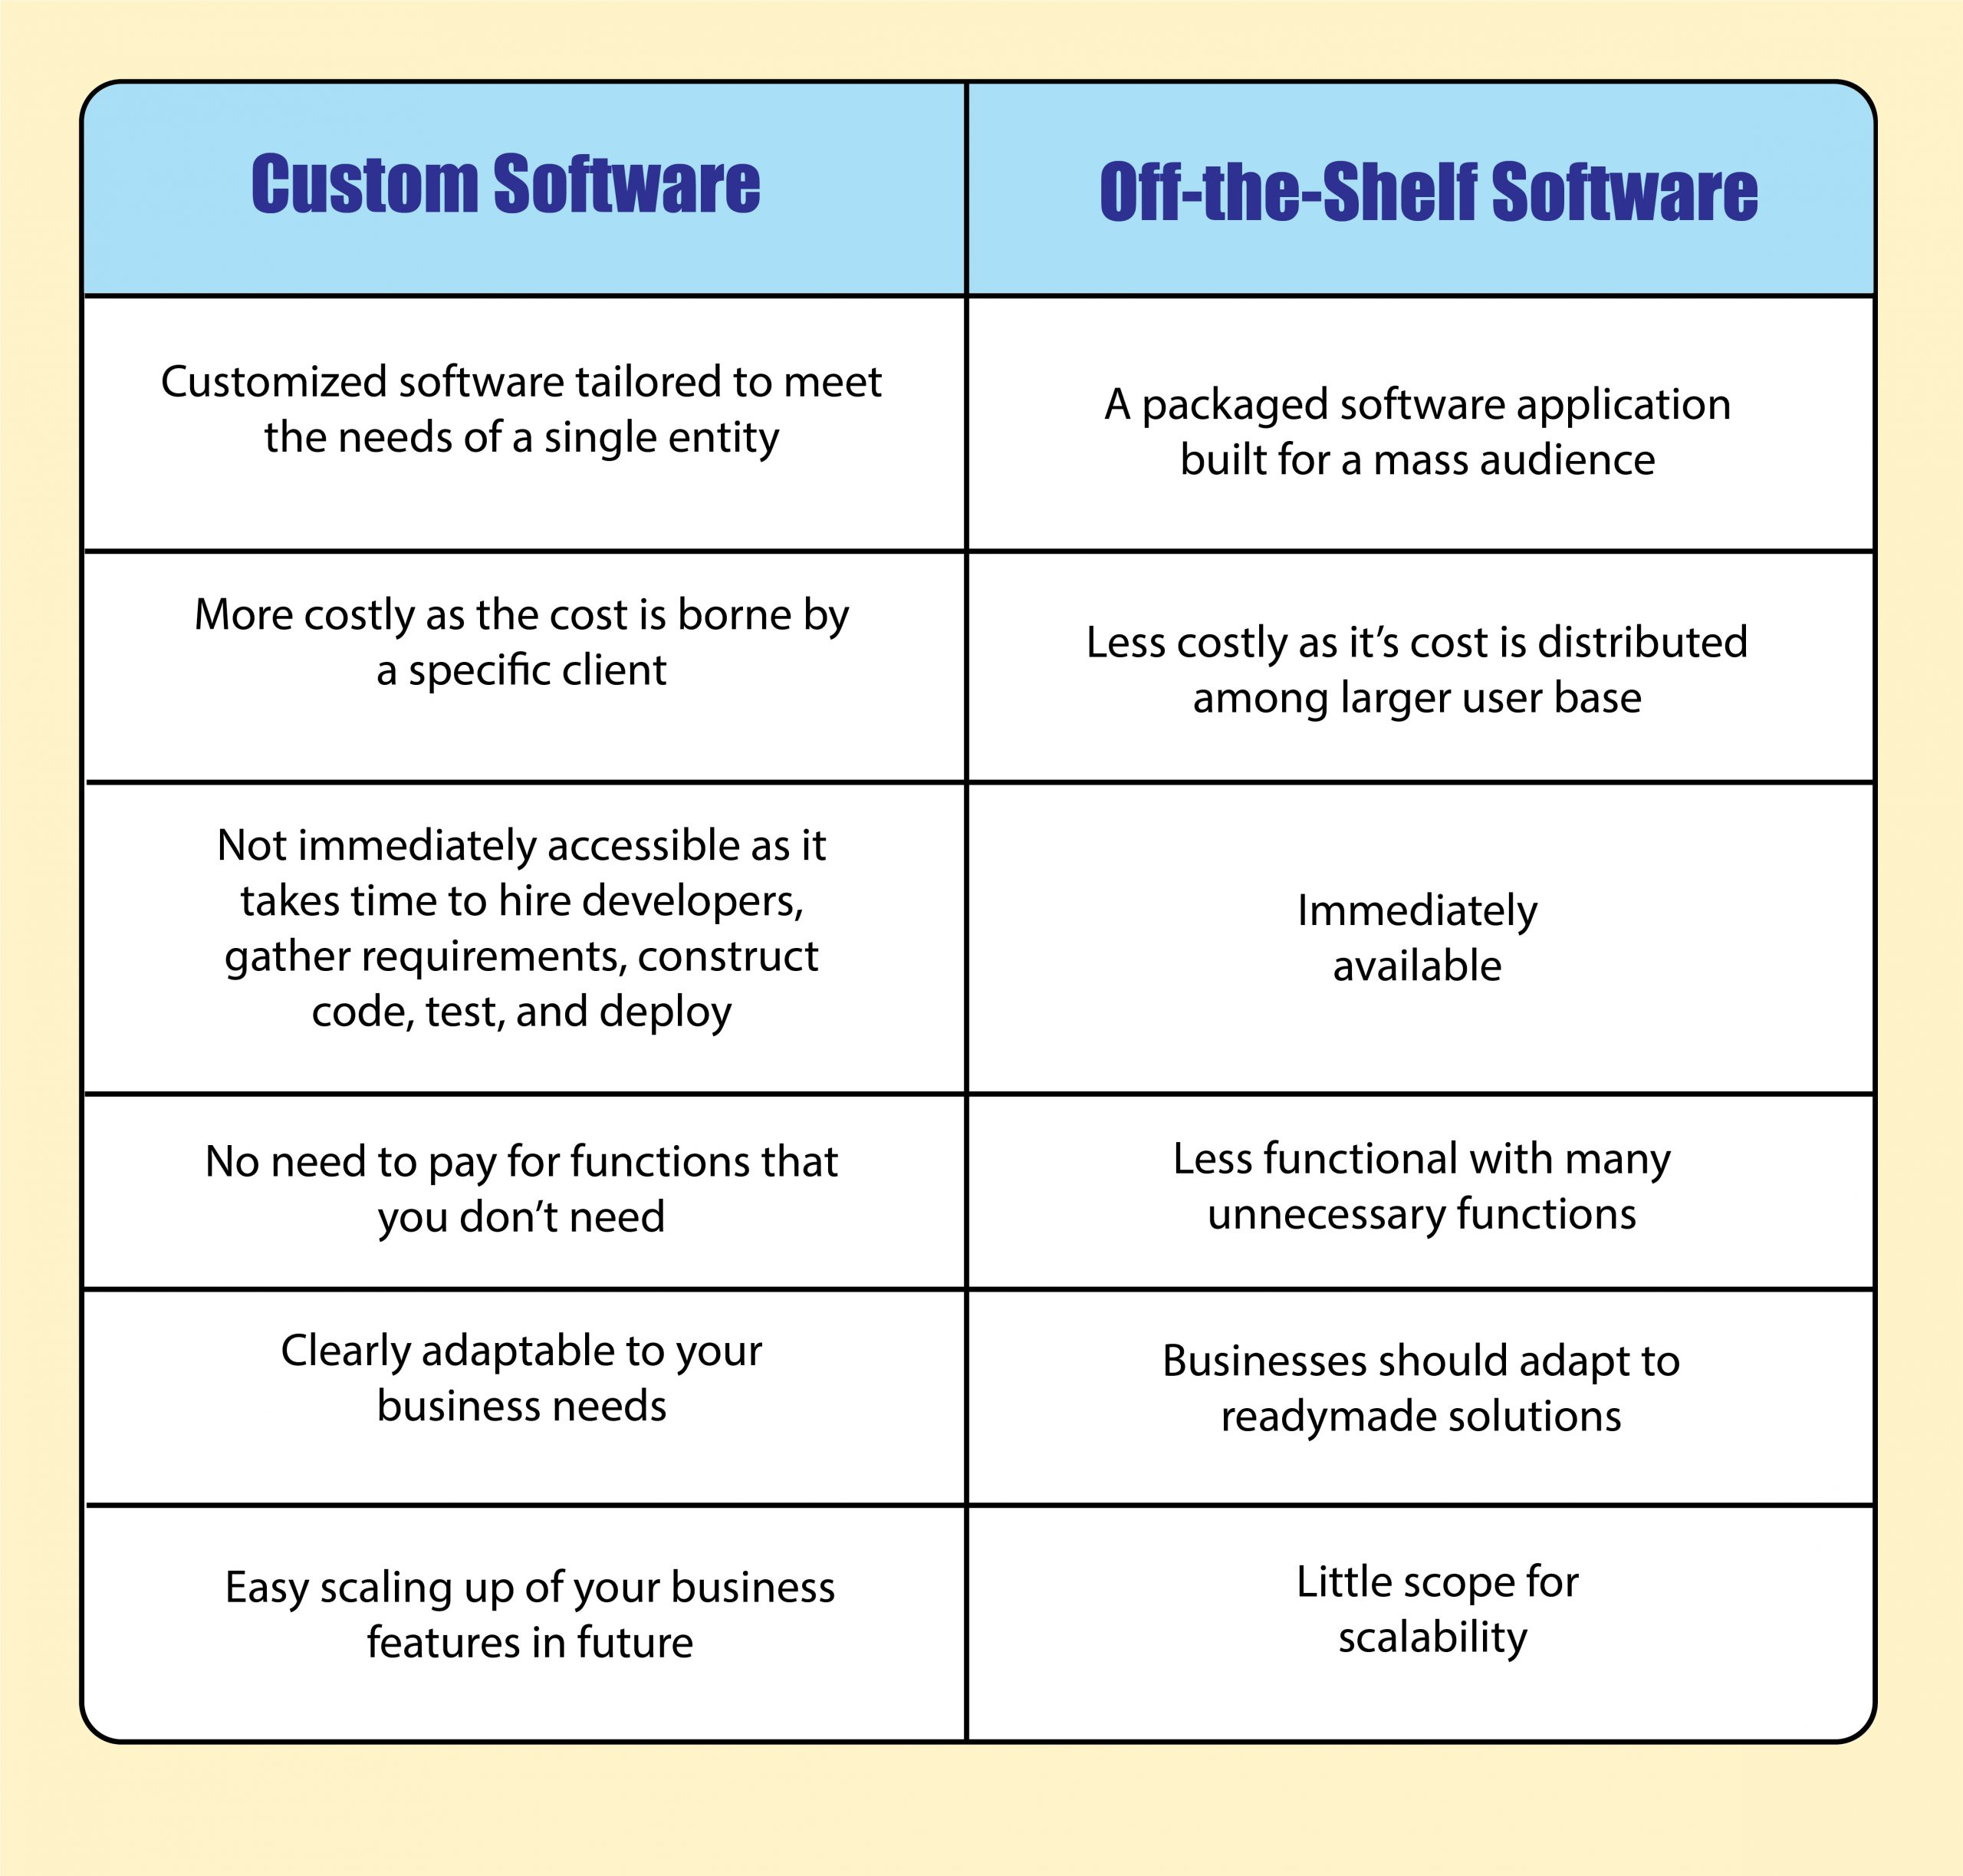 Difference between custom software and off-the-shelf software